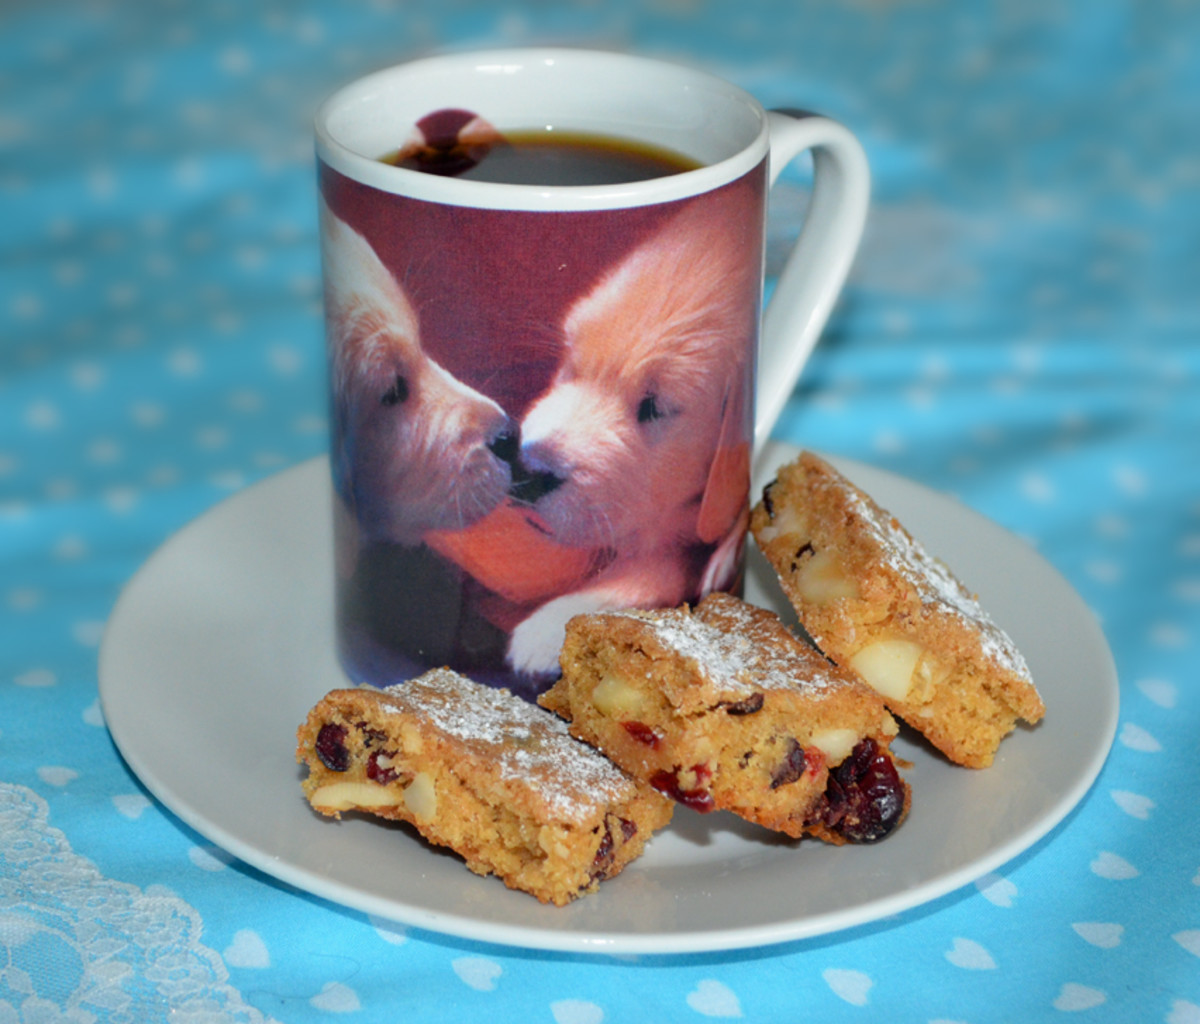 Macadamia and Cranberry Slices go very well with coffee!